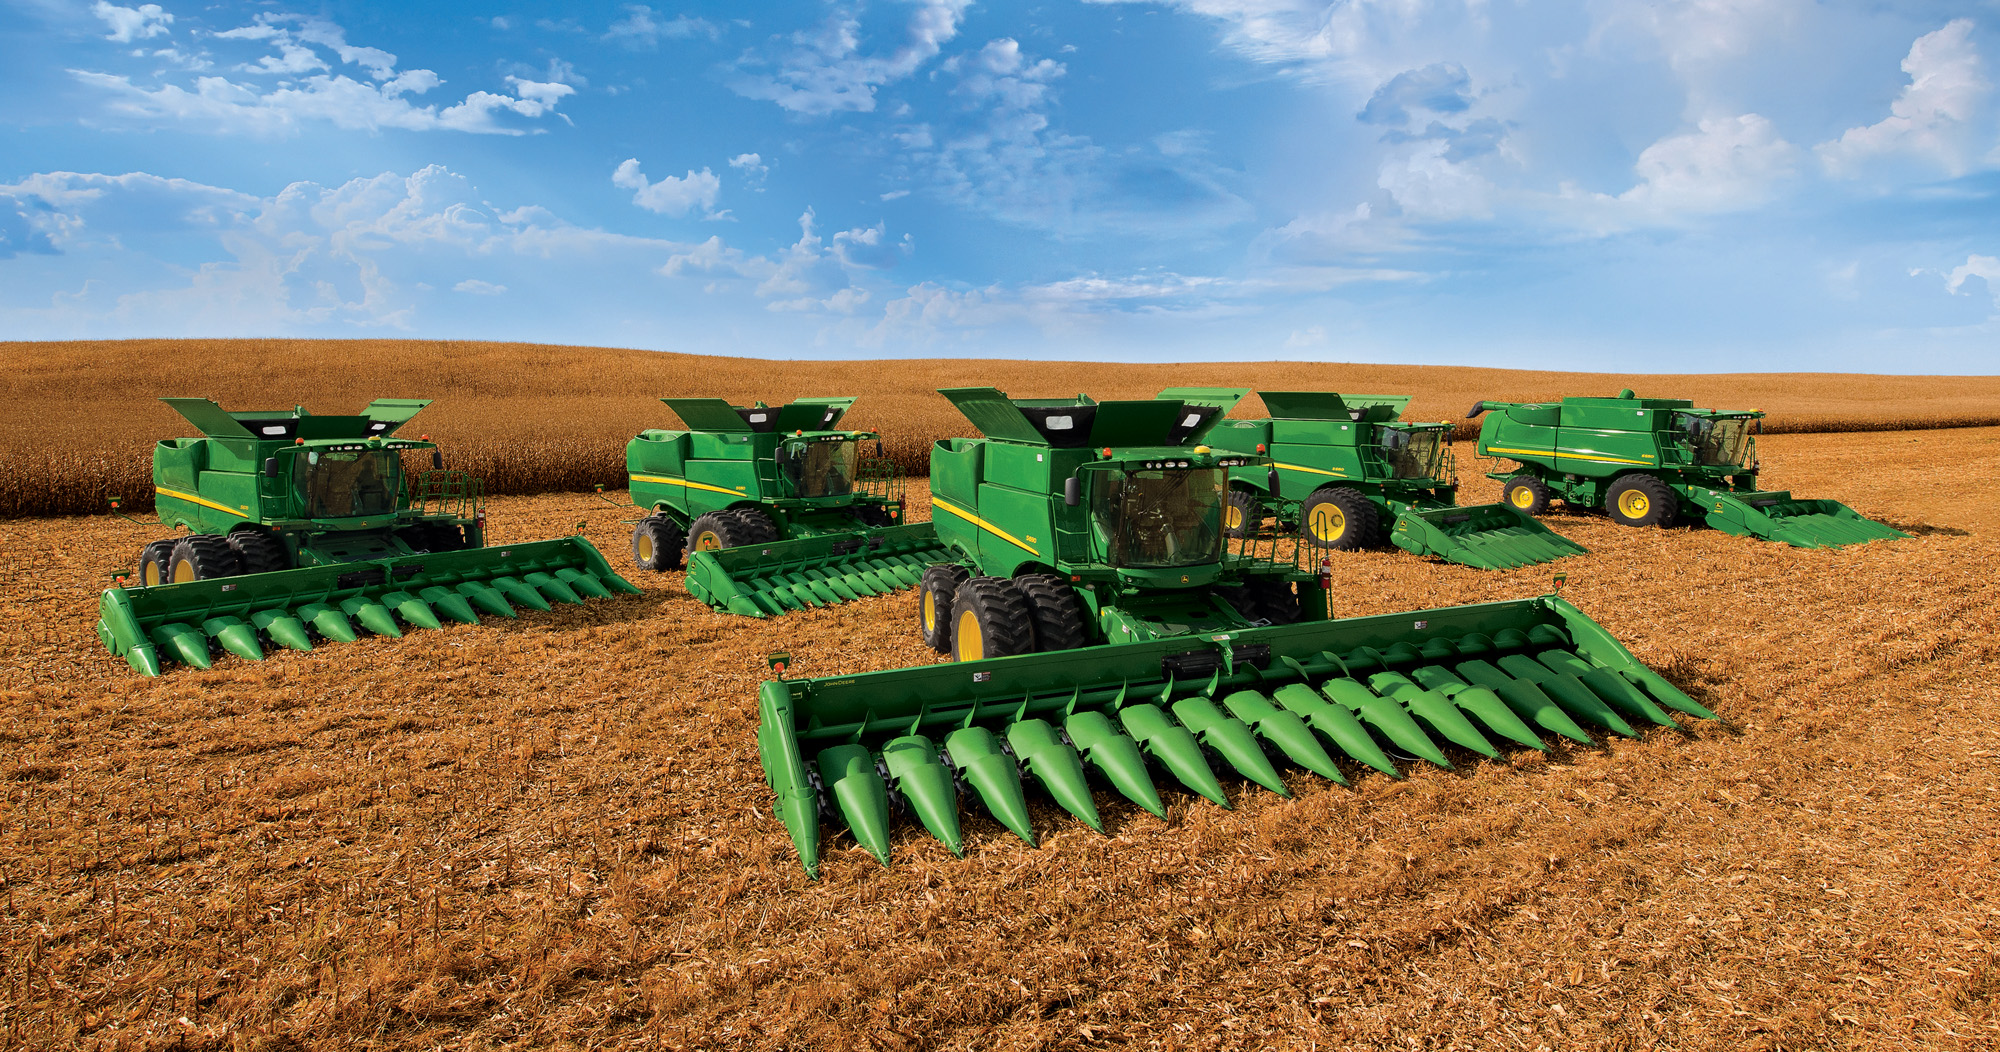 Hd Tractor Desktop Wallpapers: Deere's New Product Intro Was The Largest Ever